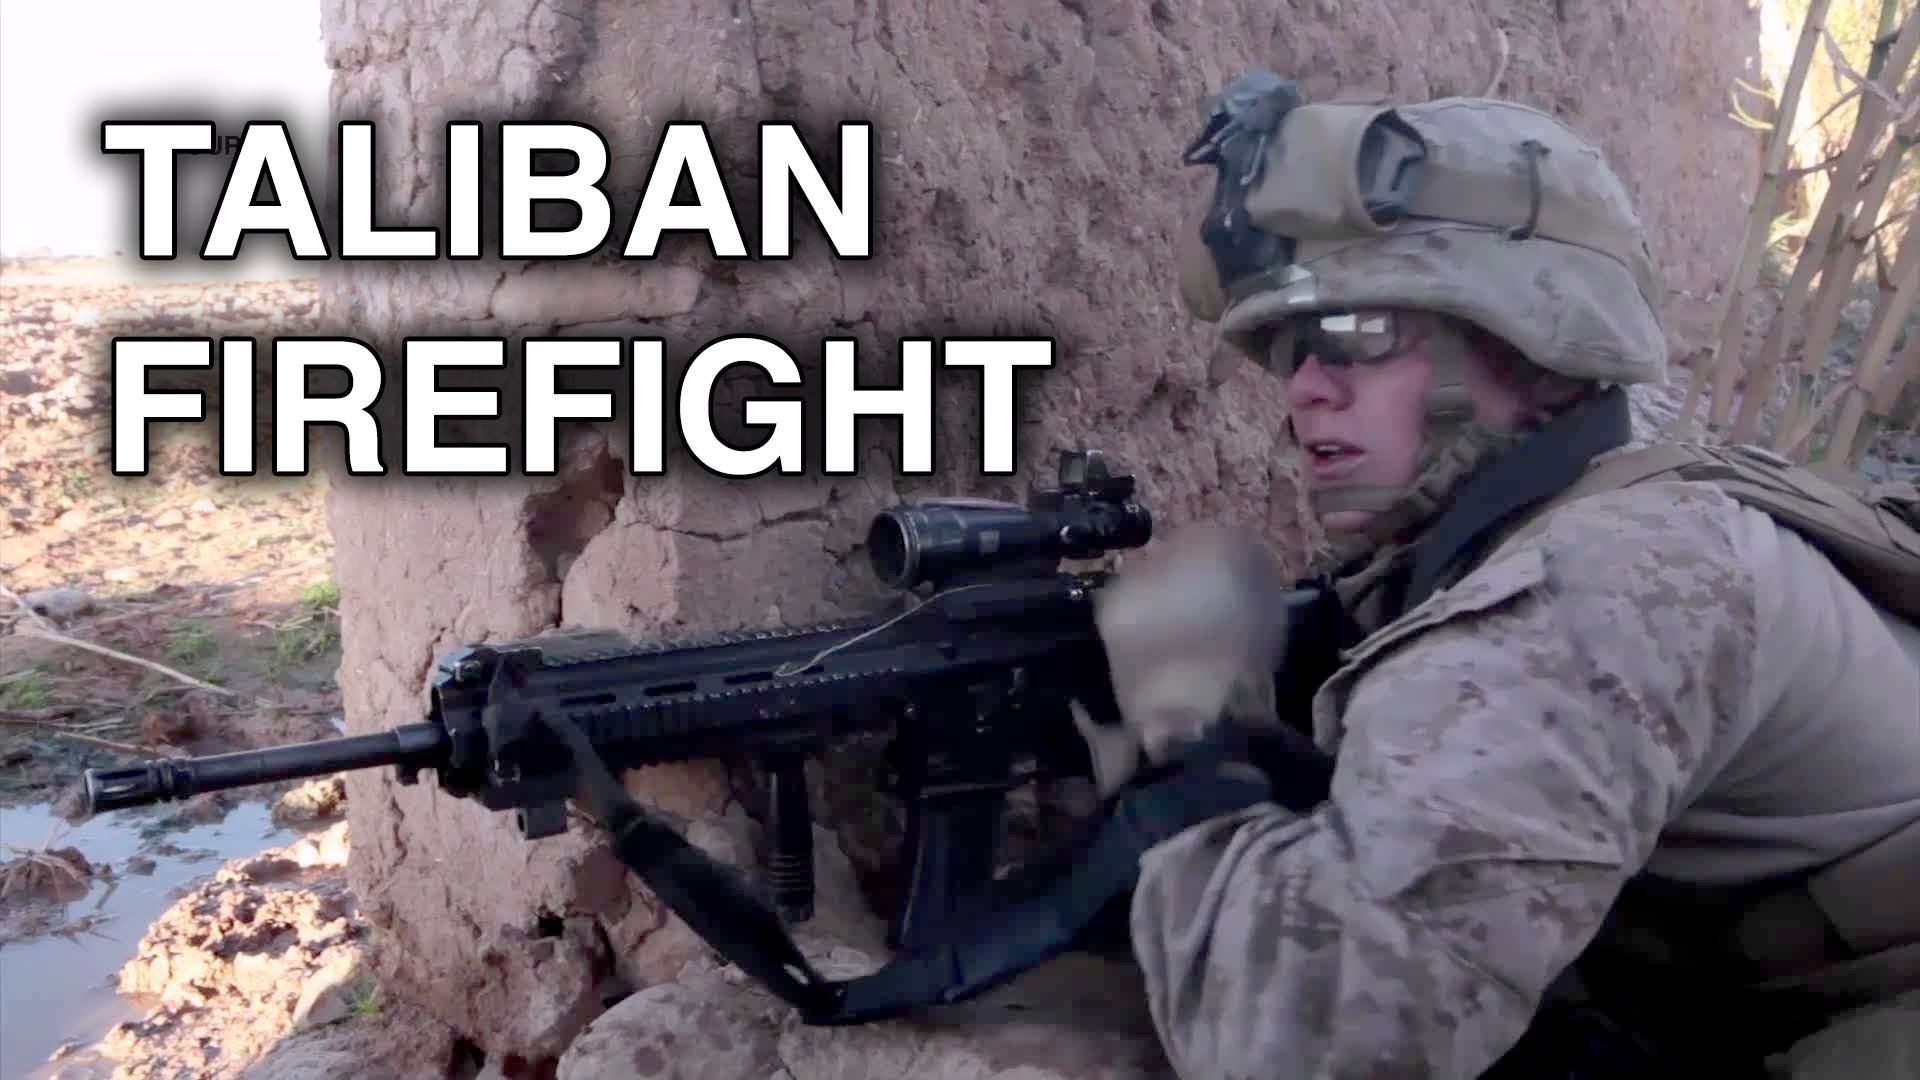 ▷ Combat Footage: US Marines Firefight with Taliban Insurgents in